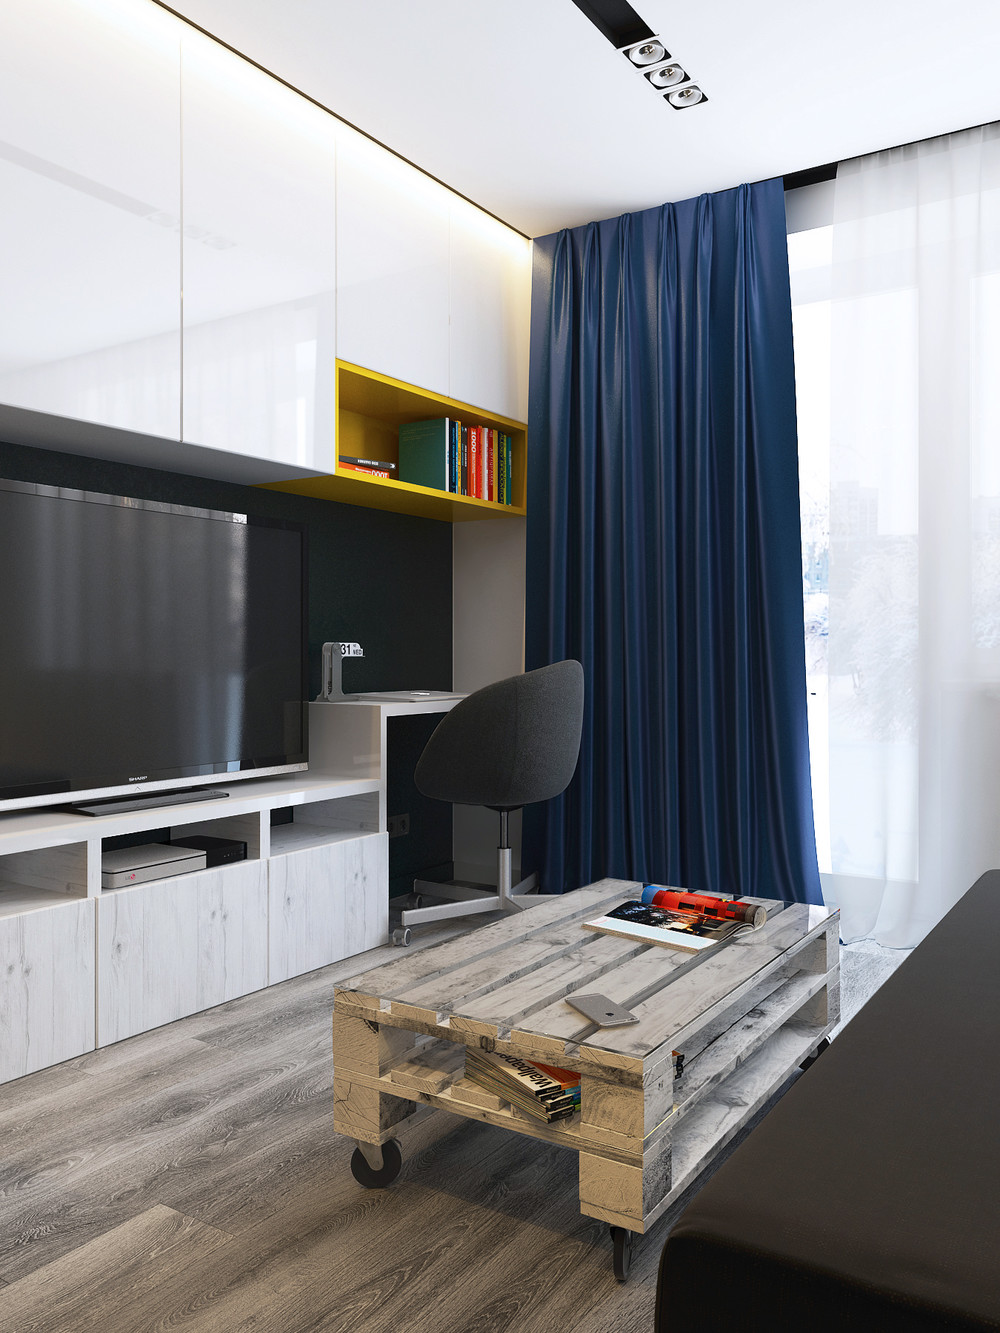 3 studio apartments under 50sqm for city dwelling couples 3 studio apartments under 50sqm for city dwelling couples including floor plans